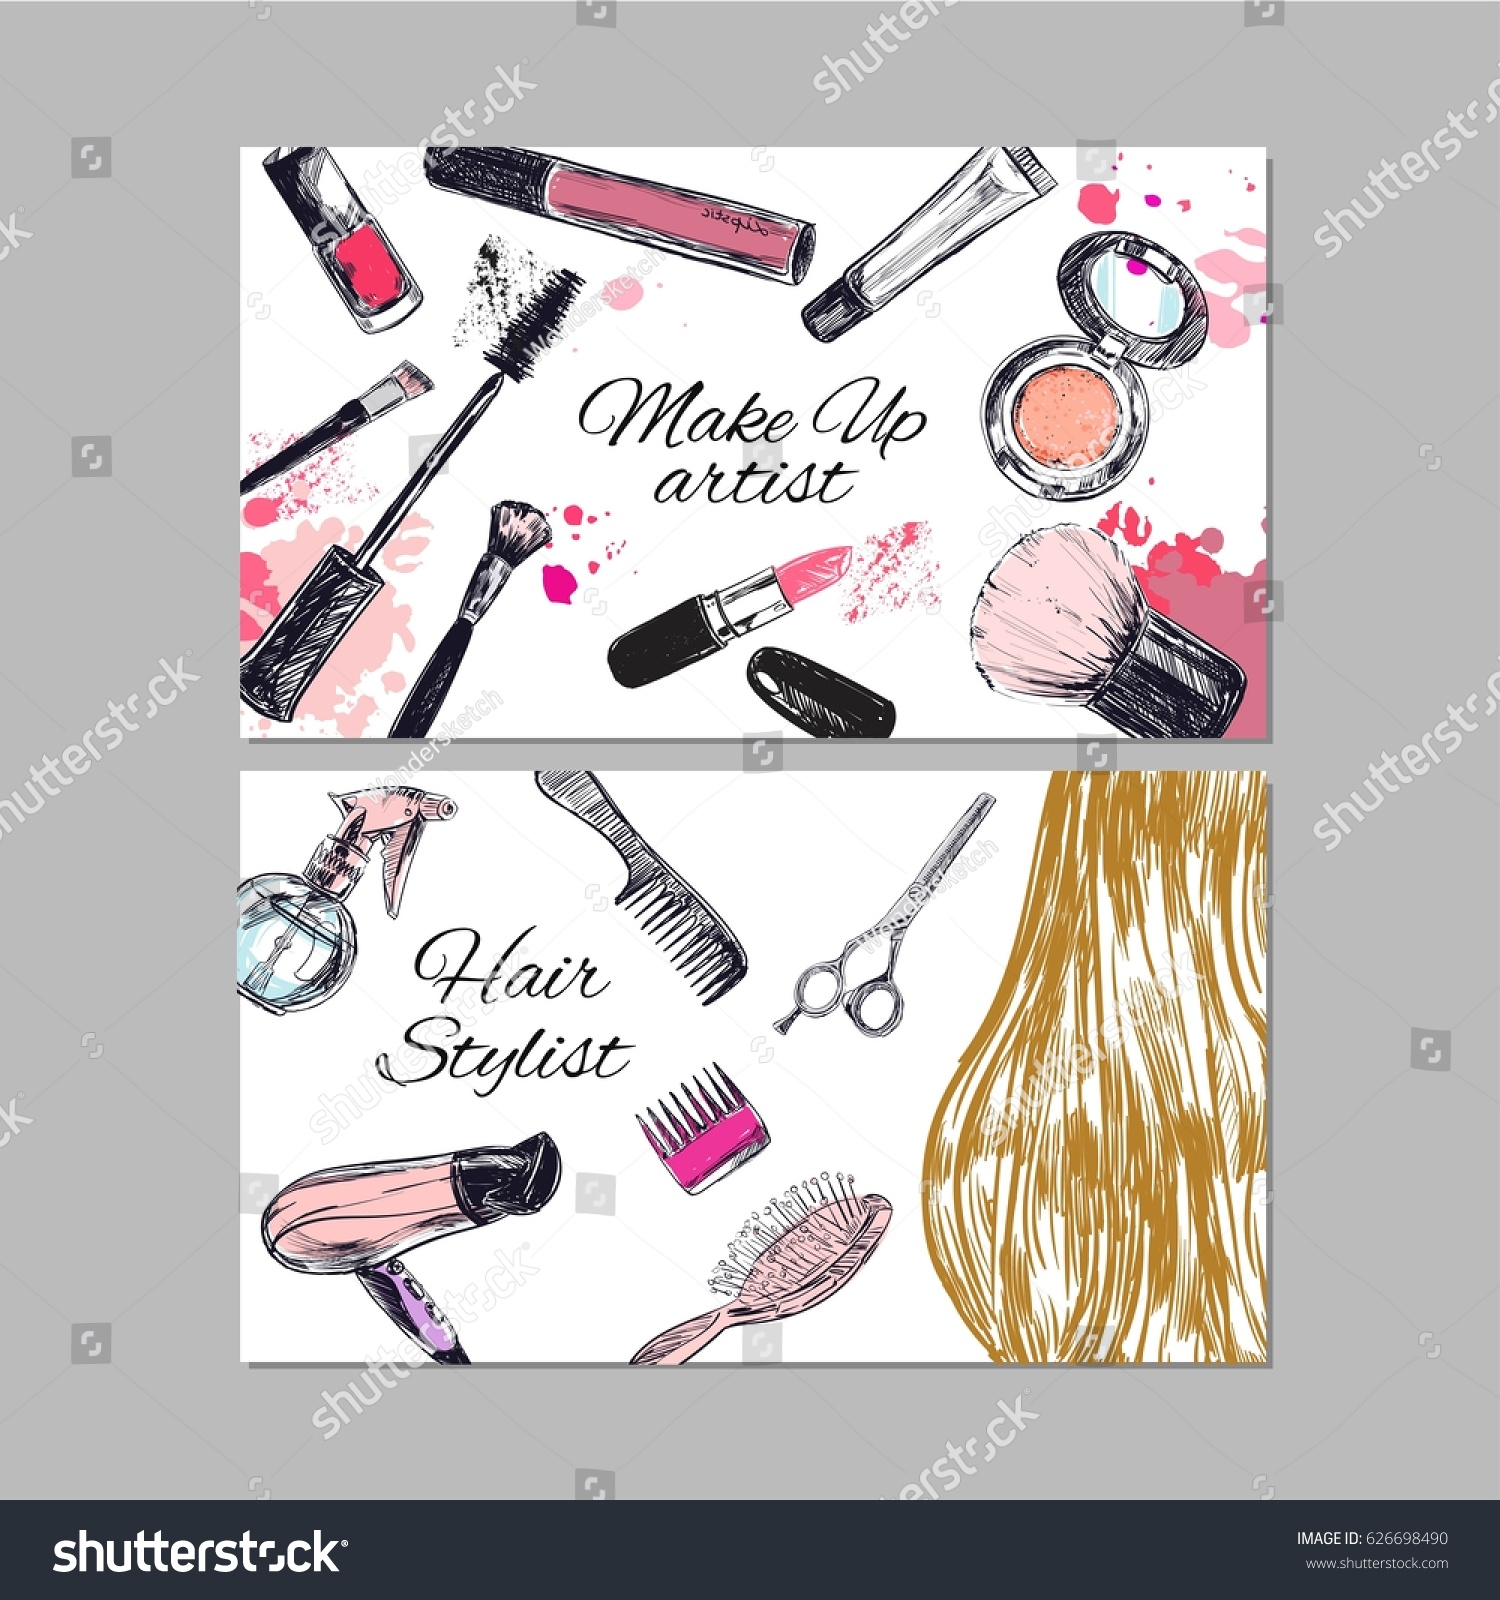 Make artist hair stylist business cards stock vector royalty free make up artist and hair stylist business cards beauty and fashion vector hand drawn wajeb Choice Image